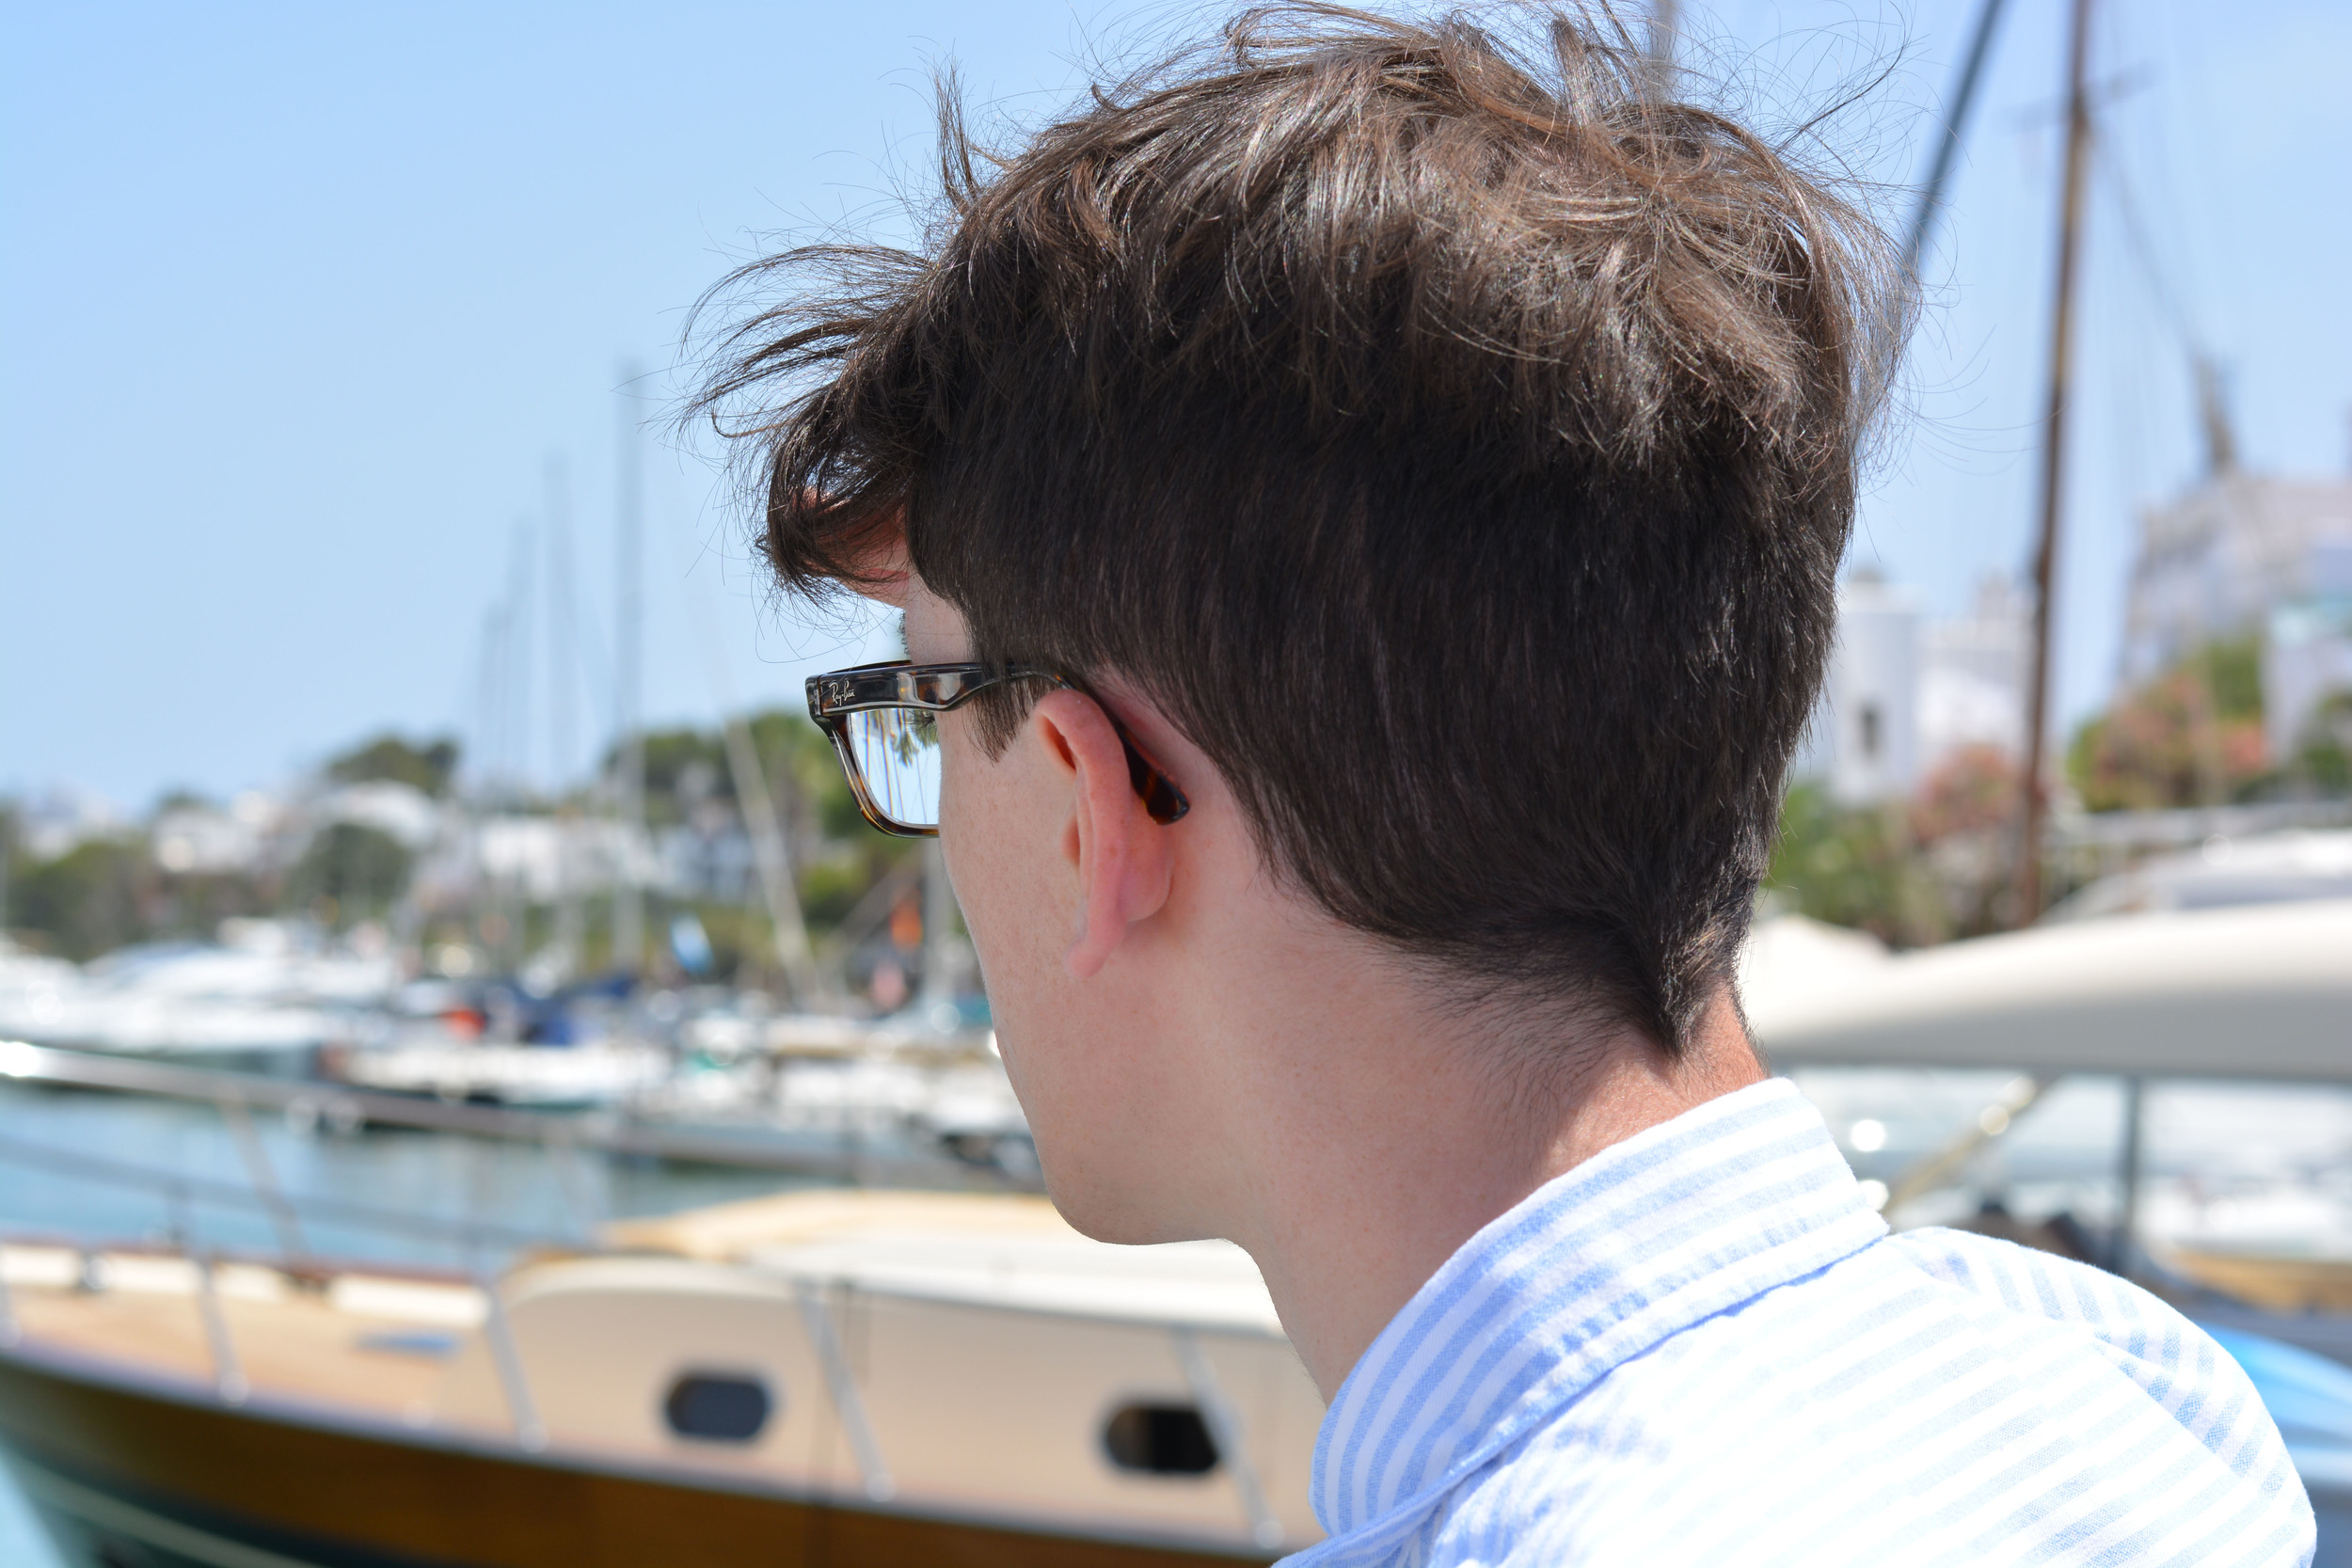 Vision Express Ray Ban RB5286 Glasses | Sam Squire UK Mens Fashion & Lifestyle Blogger